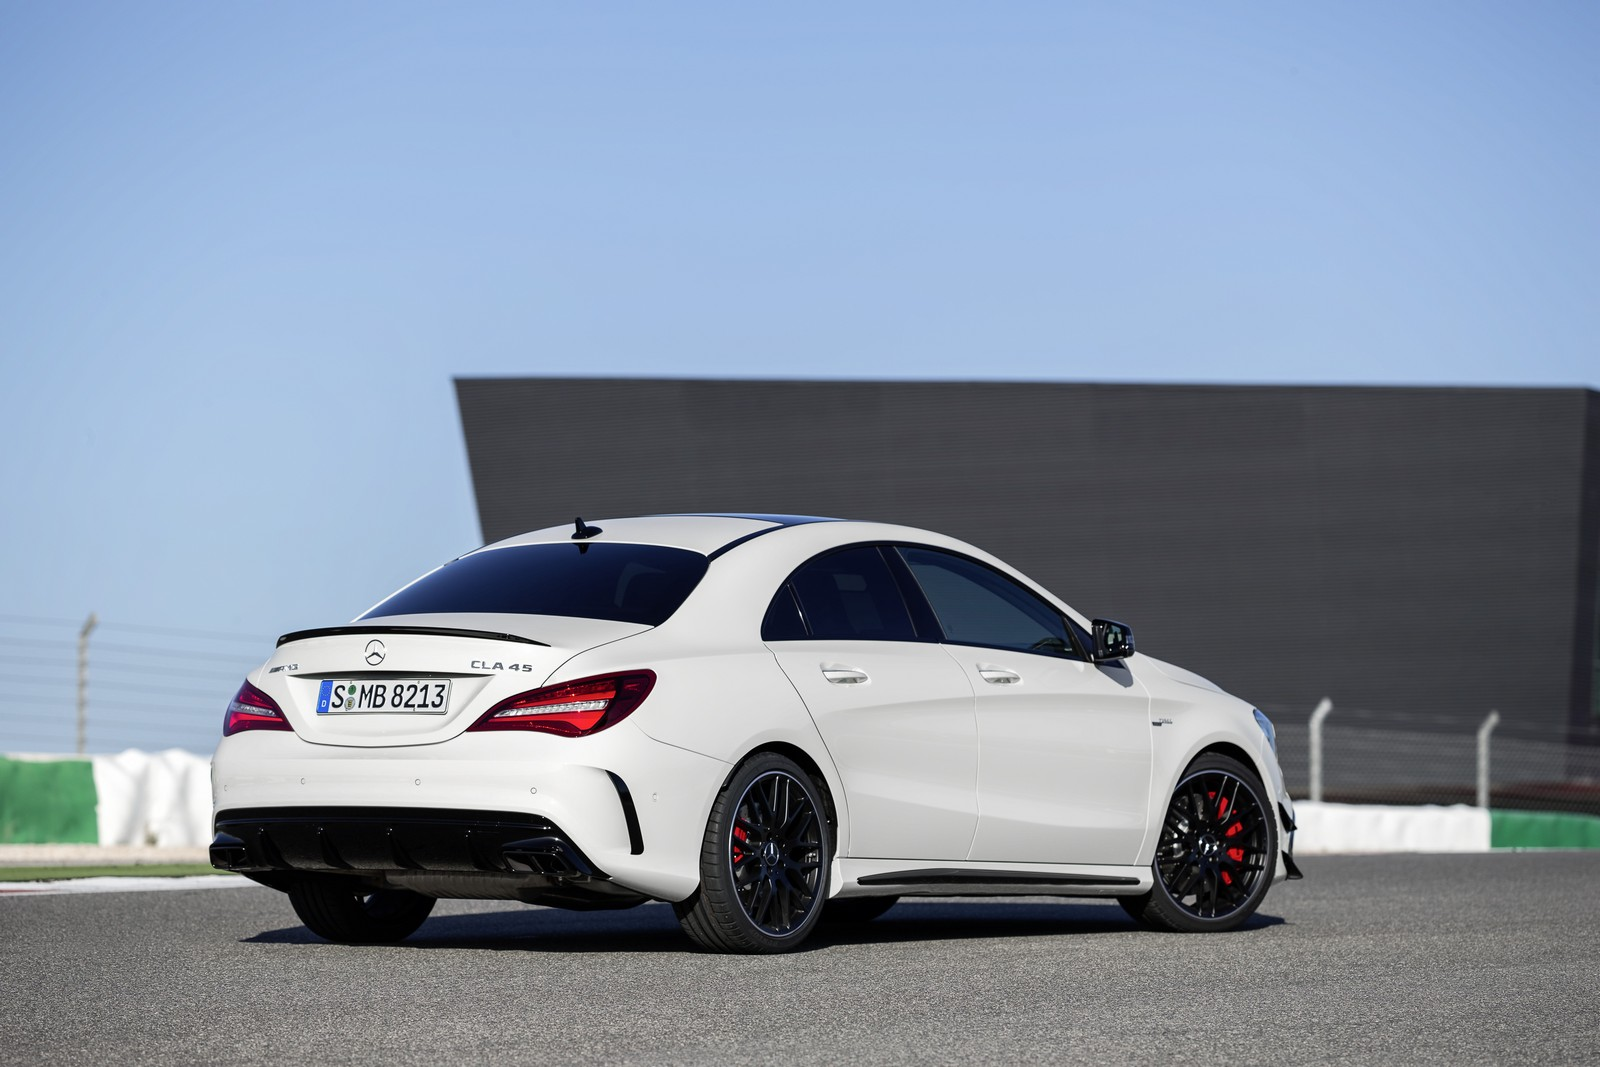 mercedes benz cla facelift sedan shooting brake amg 2016 mercedes benz autopareri. Black Bedroom Furniture Sets. Home Design Ideas